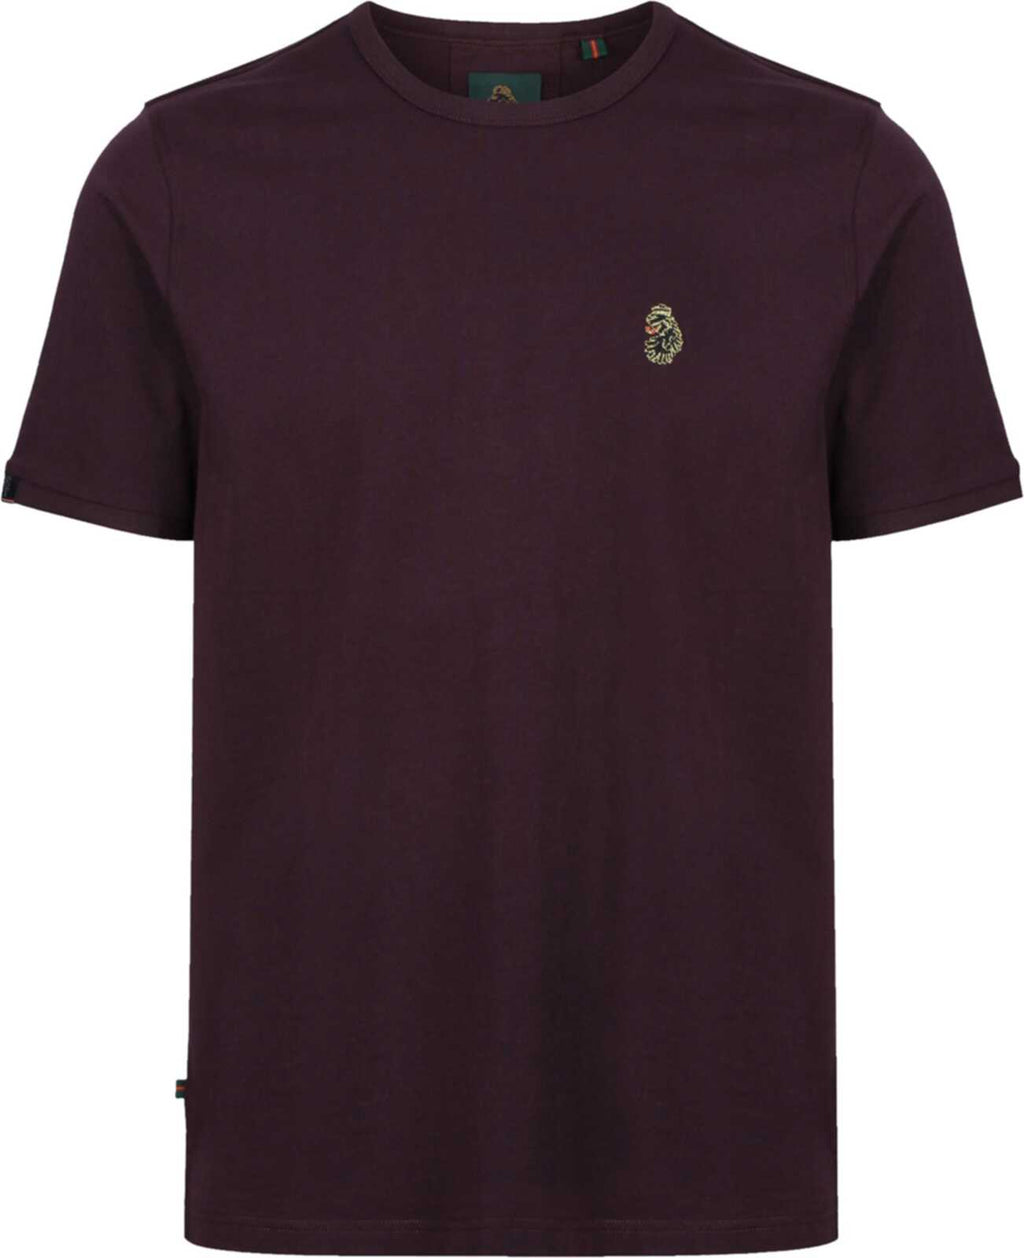 Luke 1977 Traffs T-Shirt Burgundy